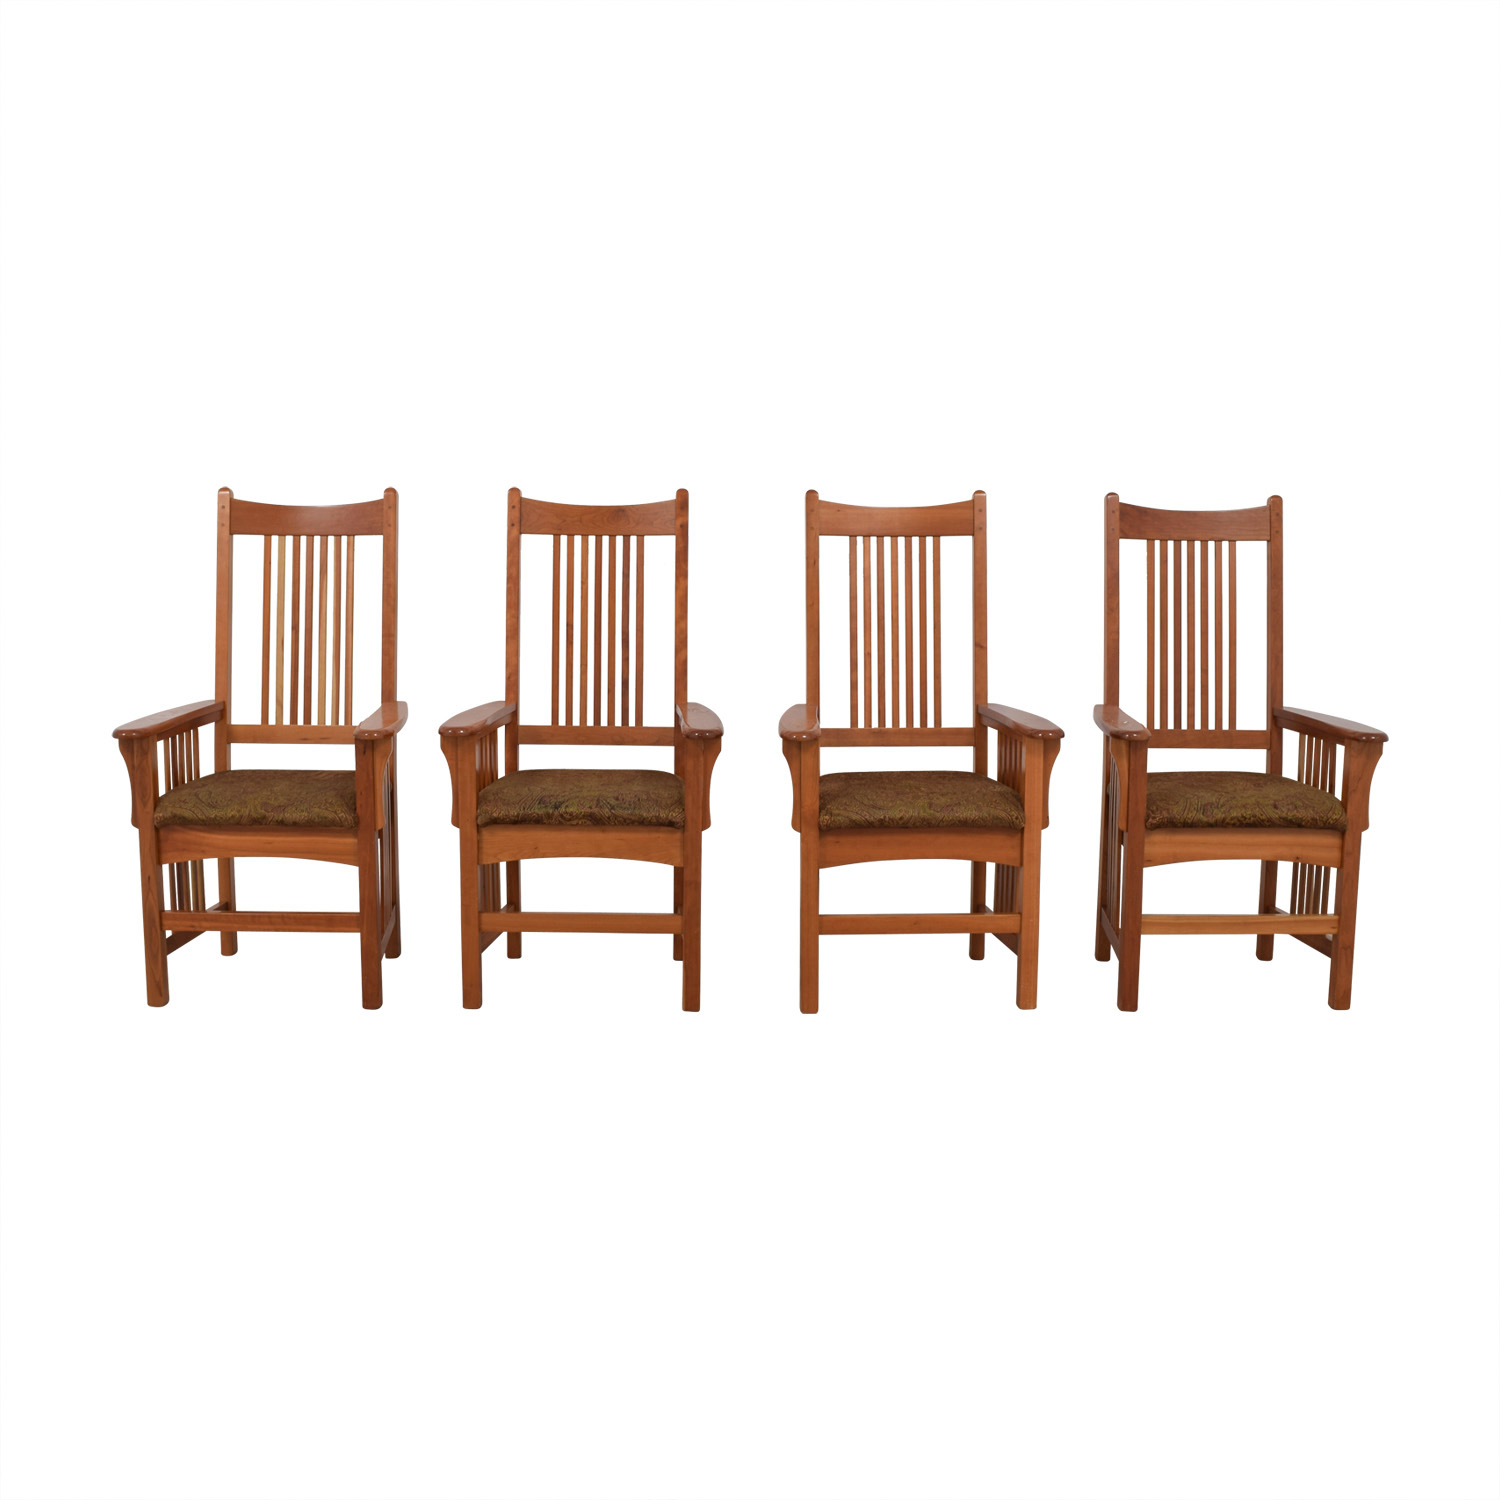 85 Off Arhaus Arhaus Furniture Mission Style Dining Chairs Chairs